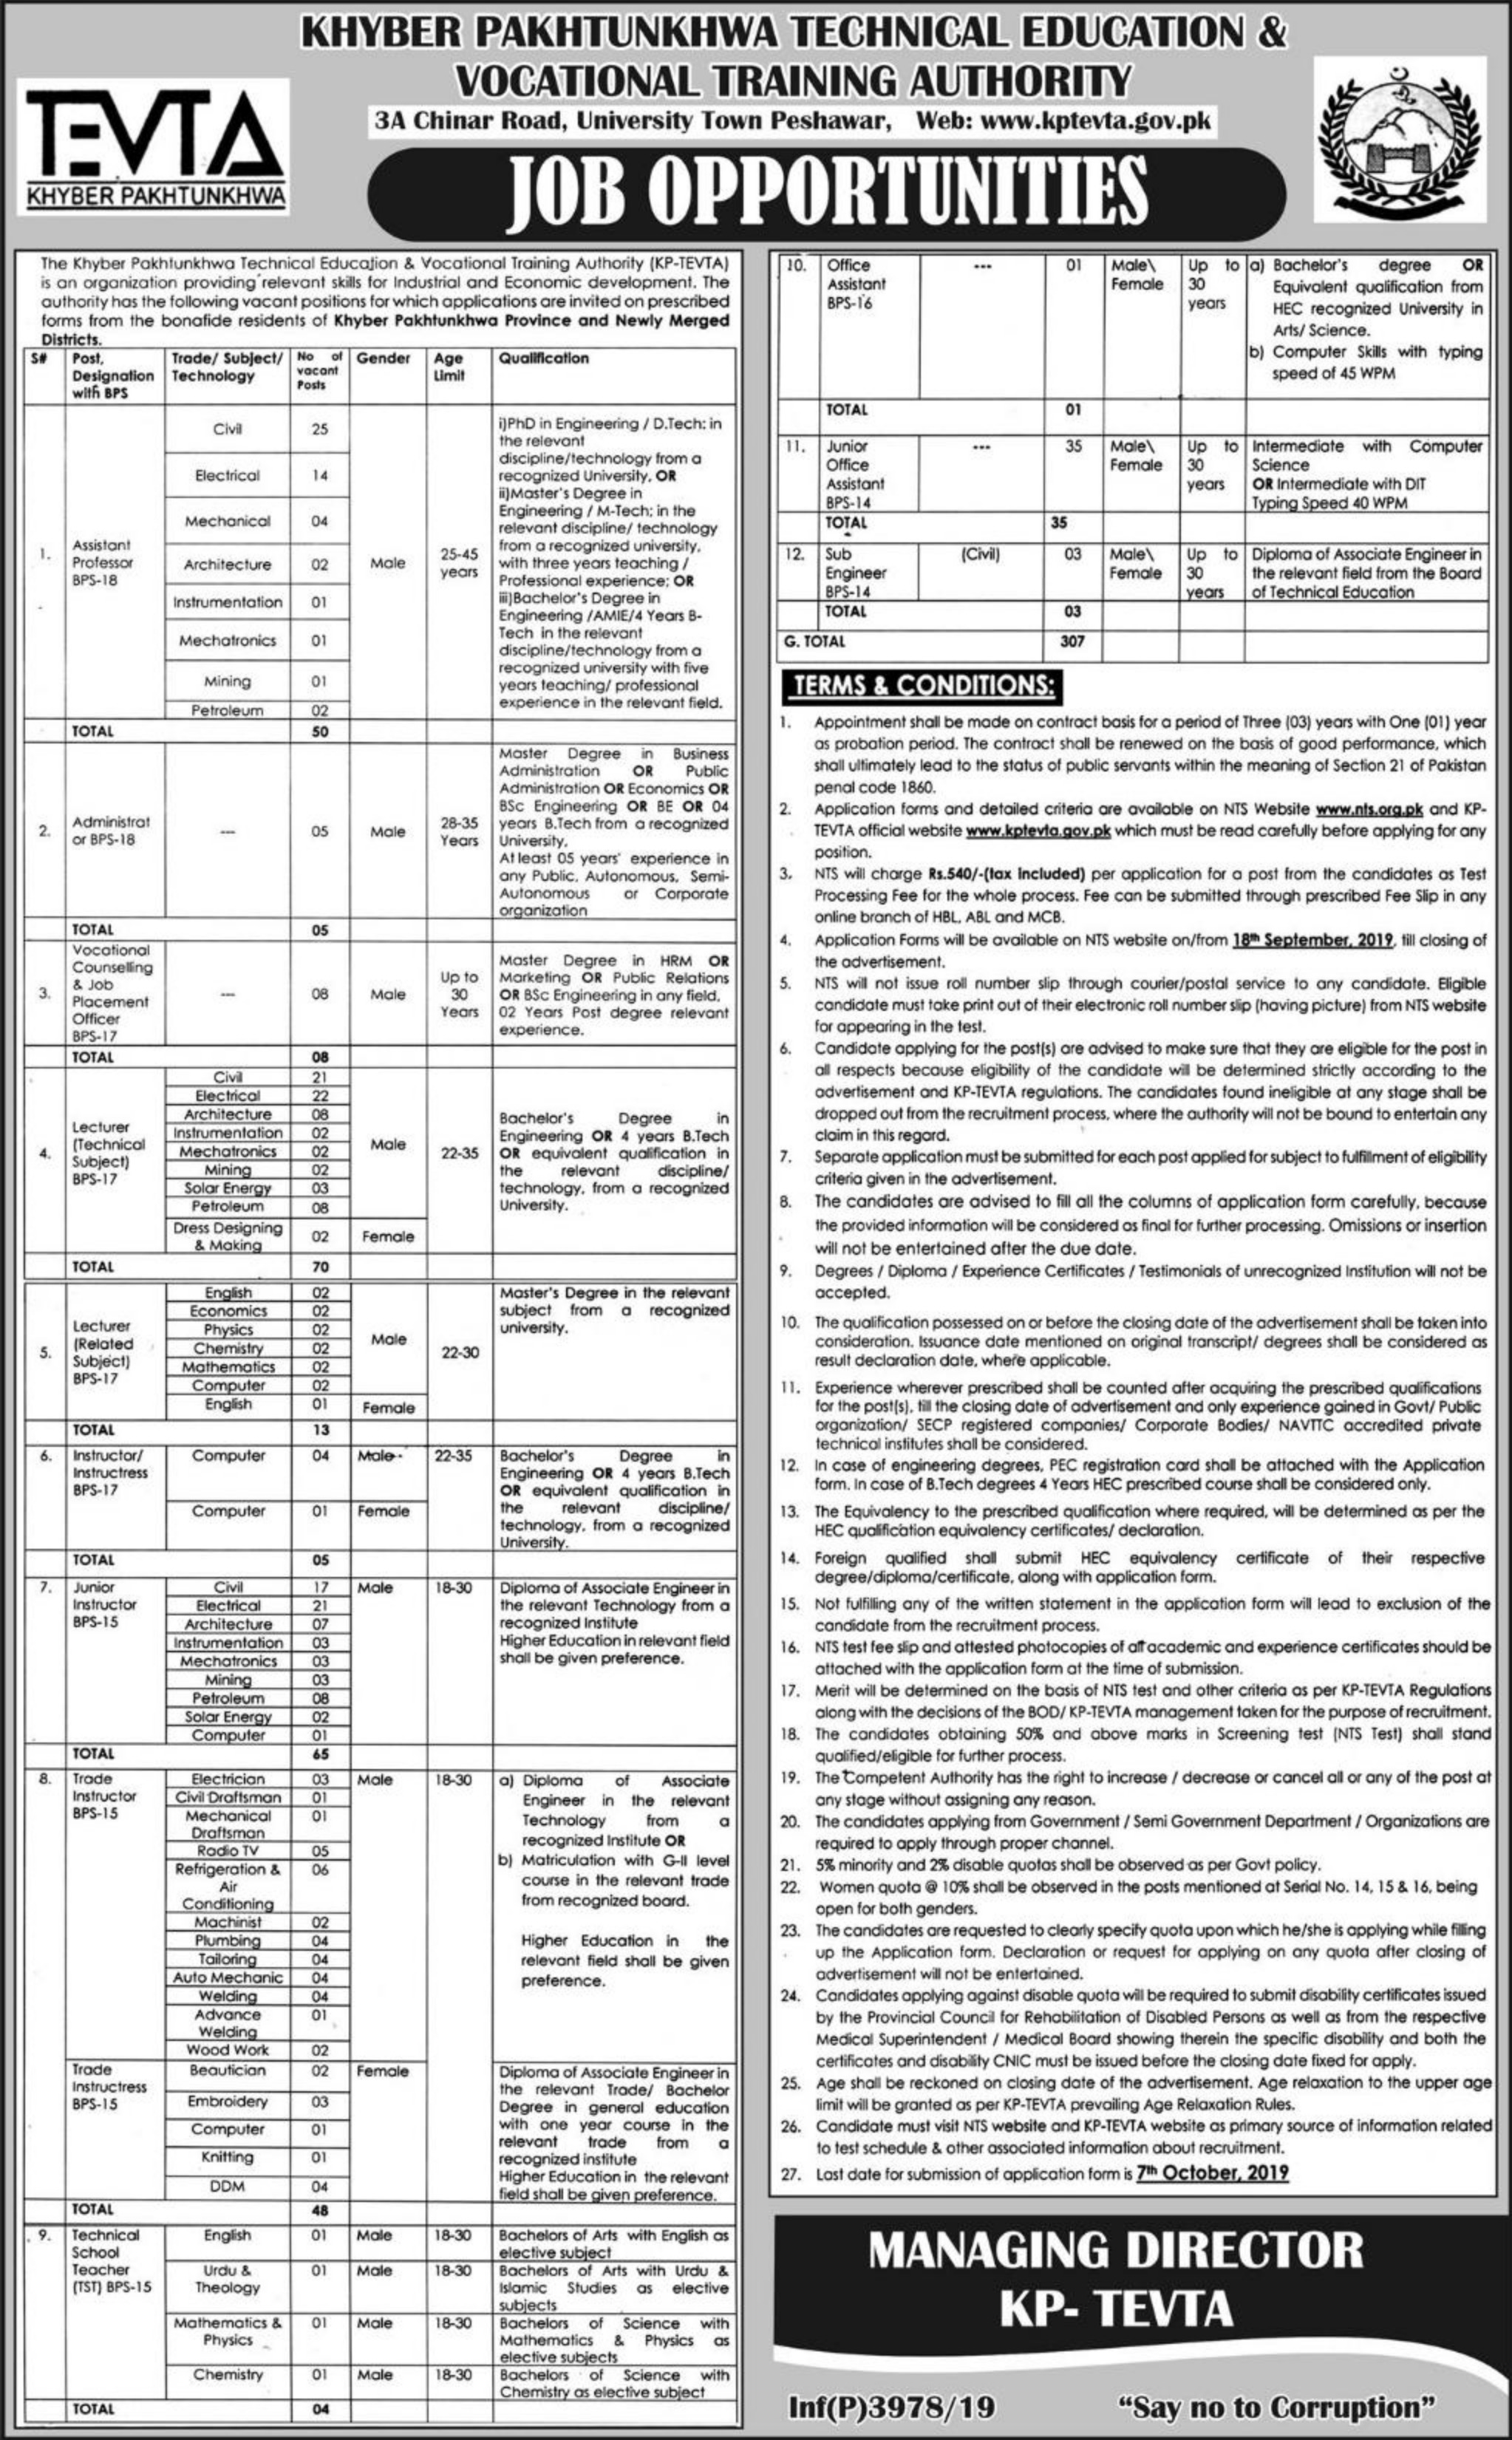 Technical Education & Vocational Training Authority KPTEVTA Jobs 2019